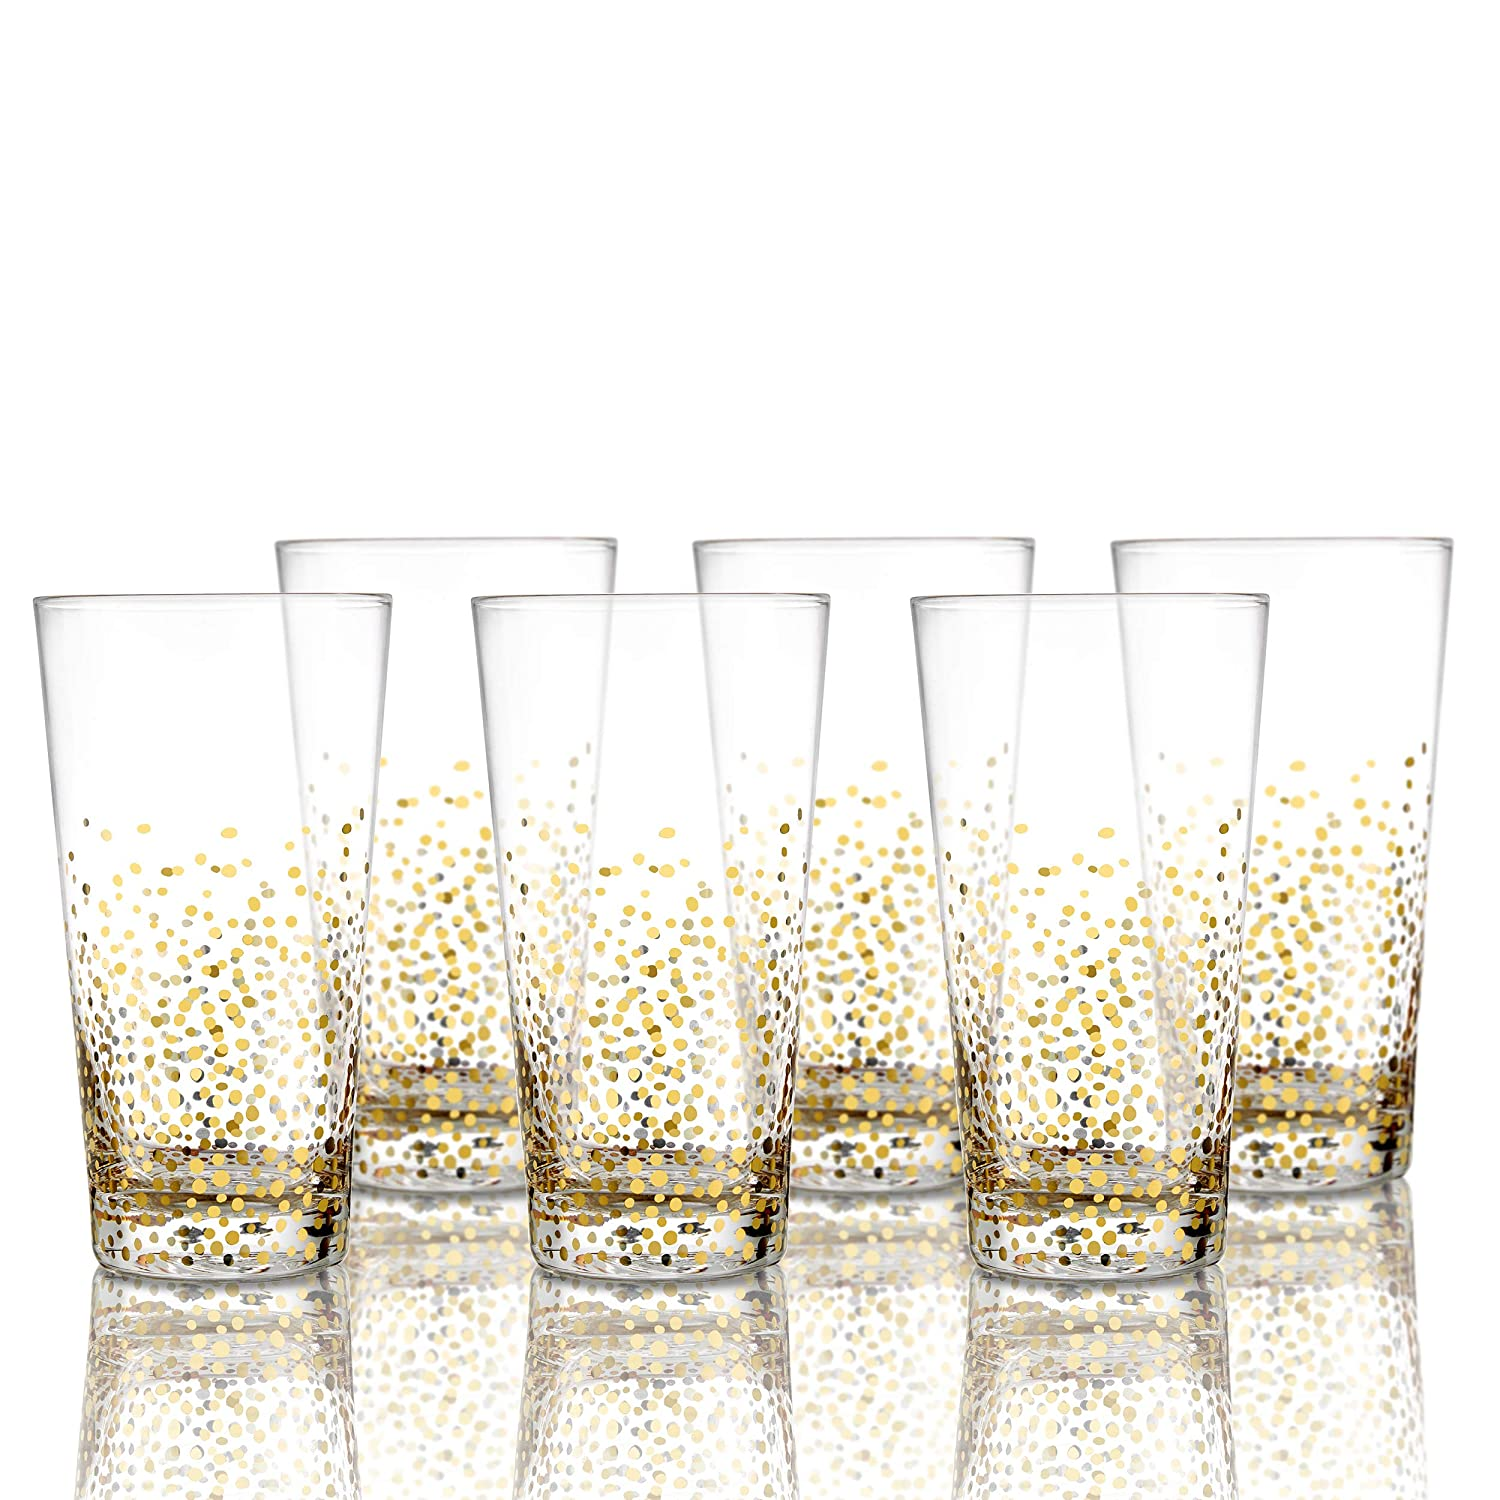 an Ideal Gift Stylish Modern Glasses 3.3x5.9 Fitz and Floyd 229700-6HB Luster Highball Set of 6 Elegant Lead-Free Matching Drinkware Perfect for Everyday Use Or Entertaining Gold